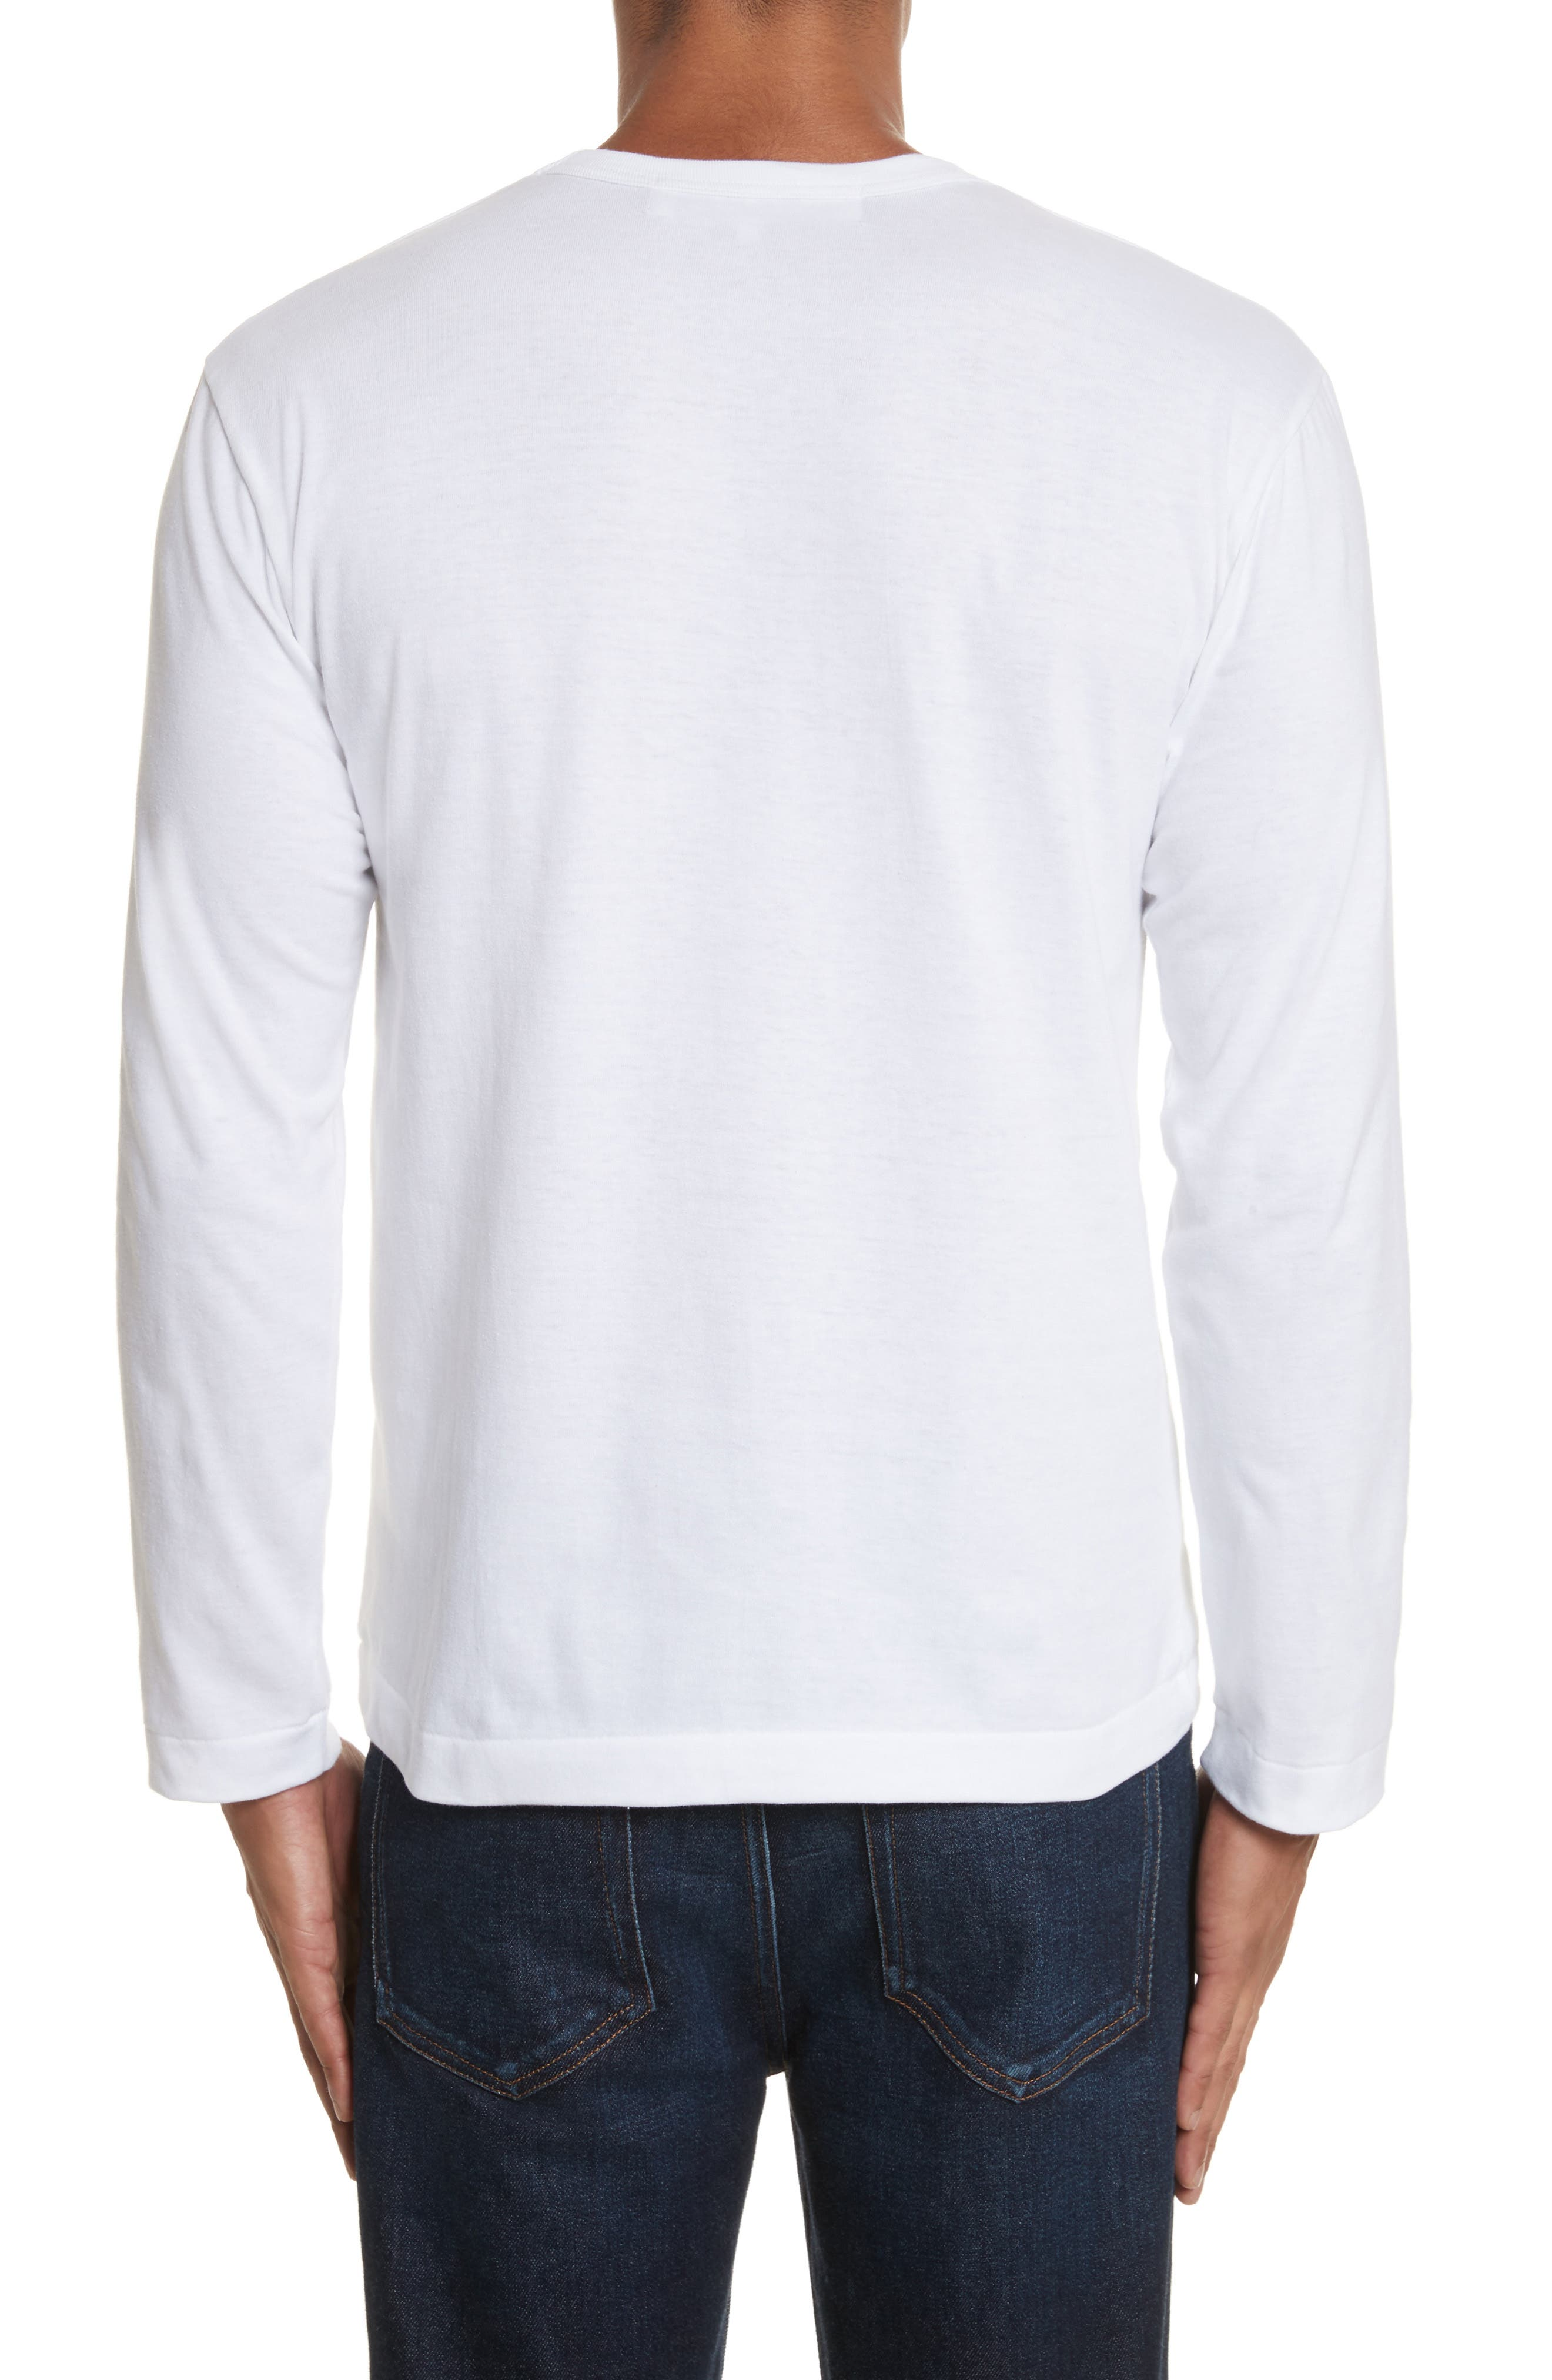 PLAY Long Sleeve T-Shirt,                             Alternate thumbnail 2, color,                             White